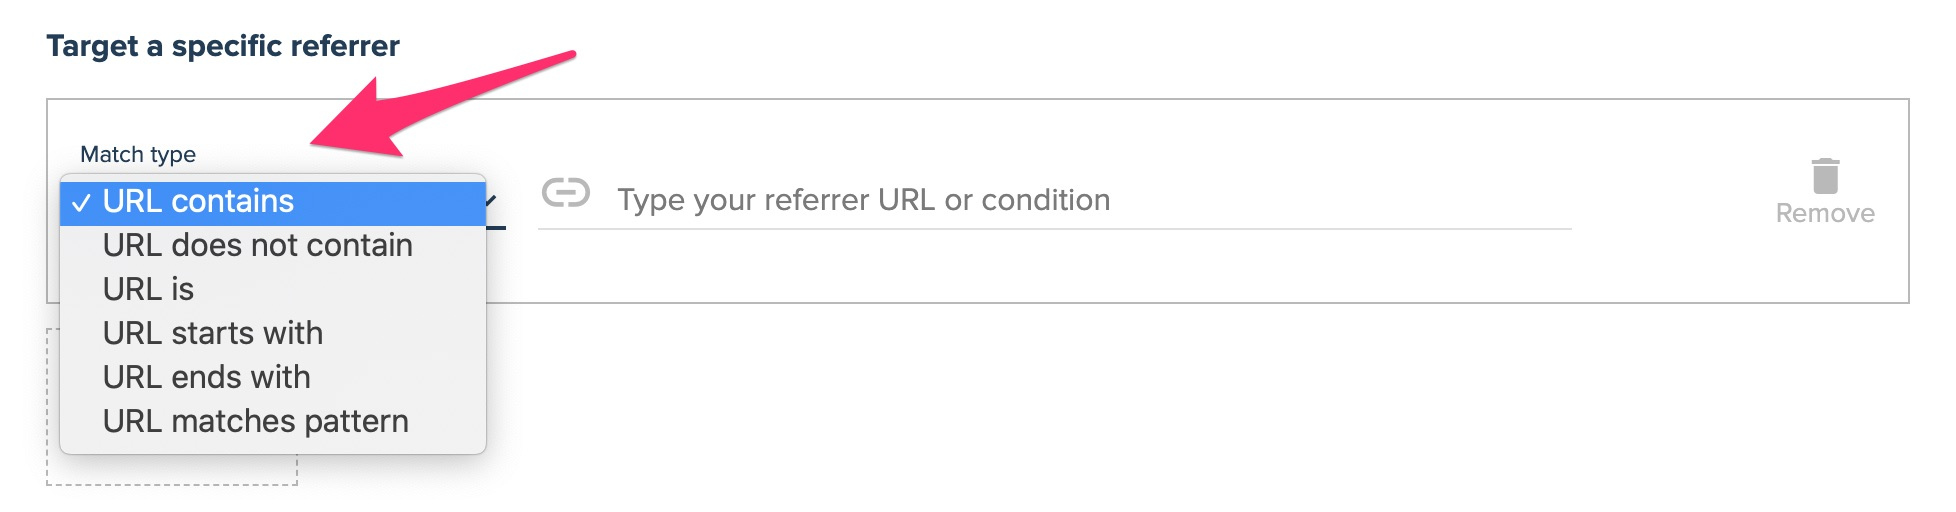 url targeting referrer